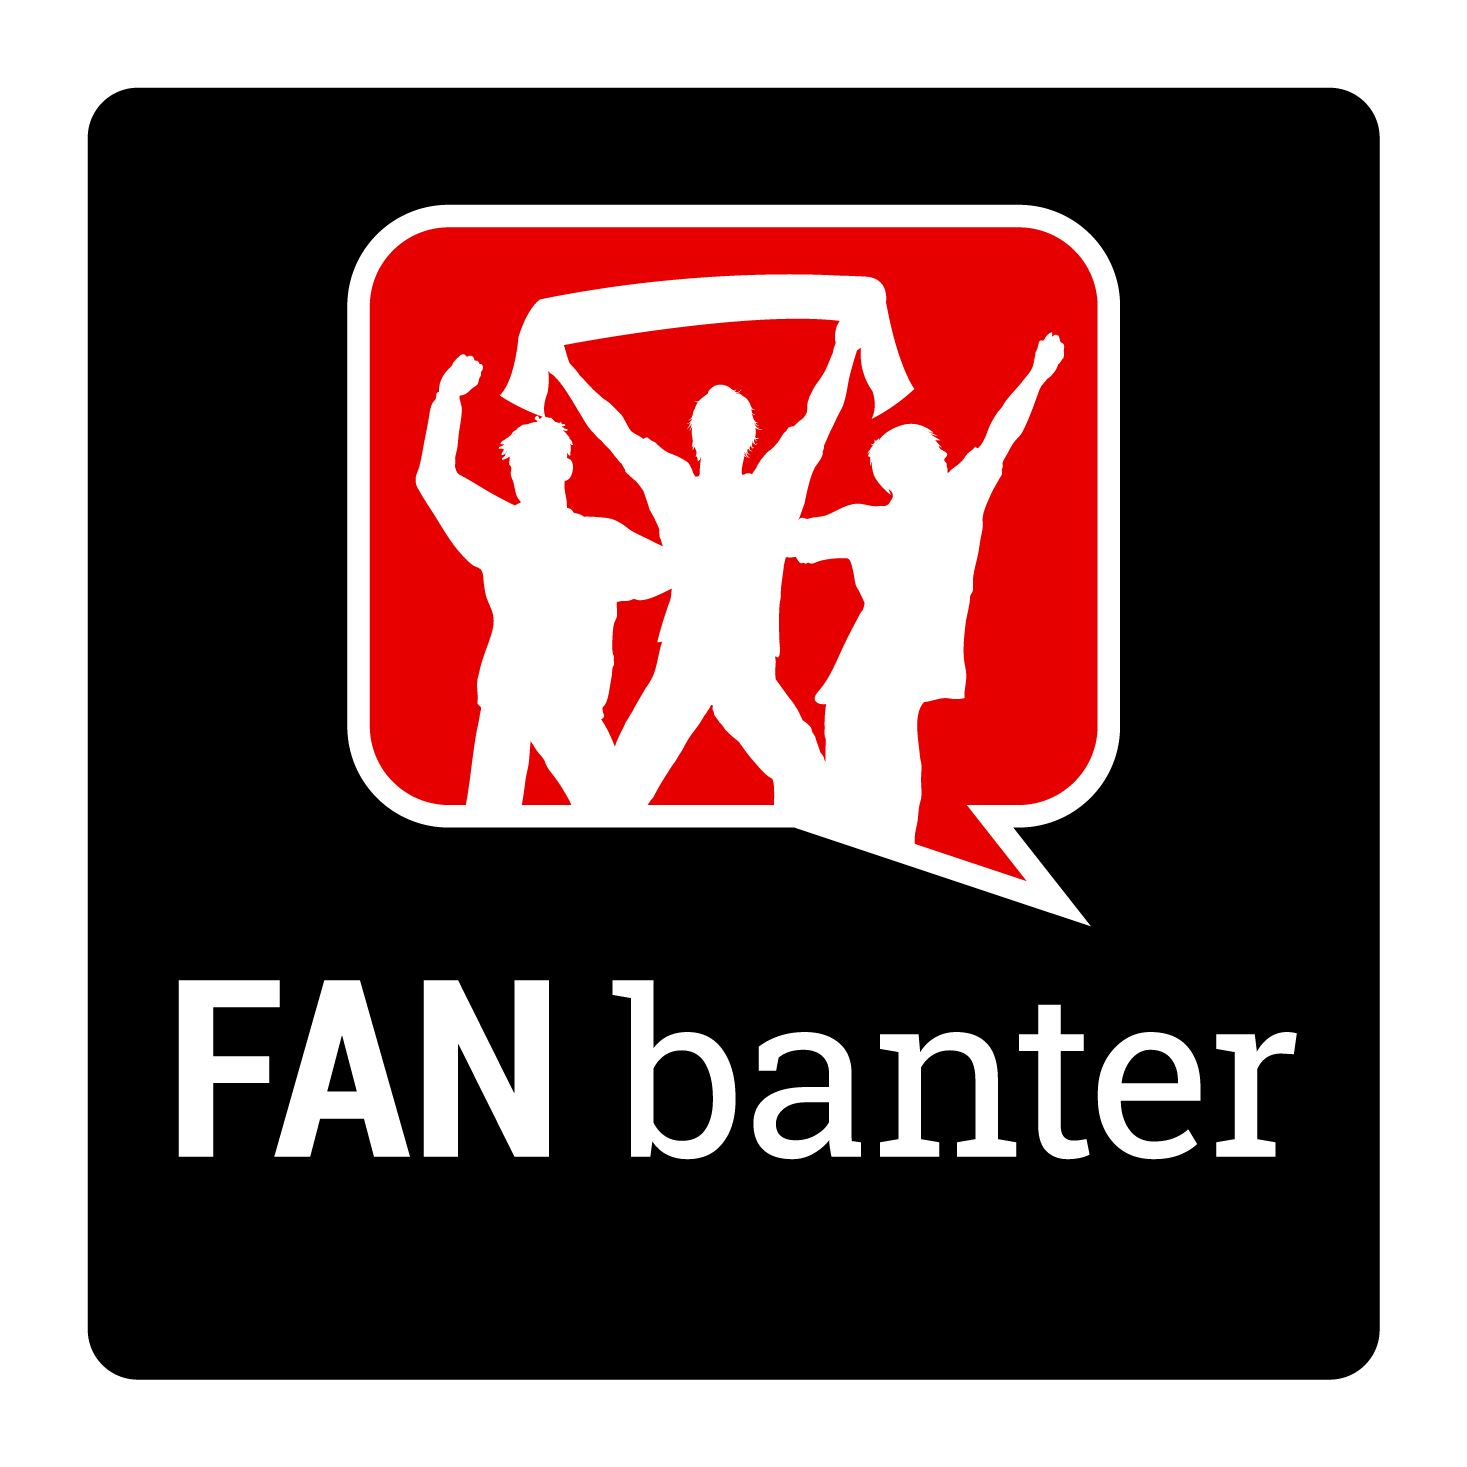 fanbanter.co.uk